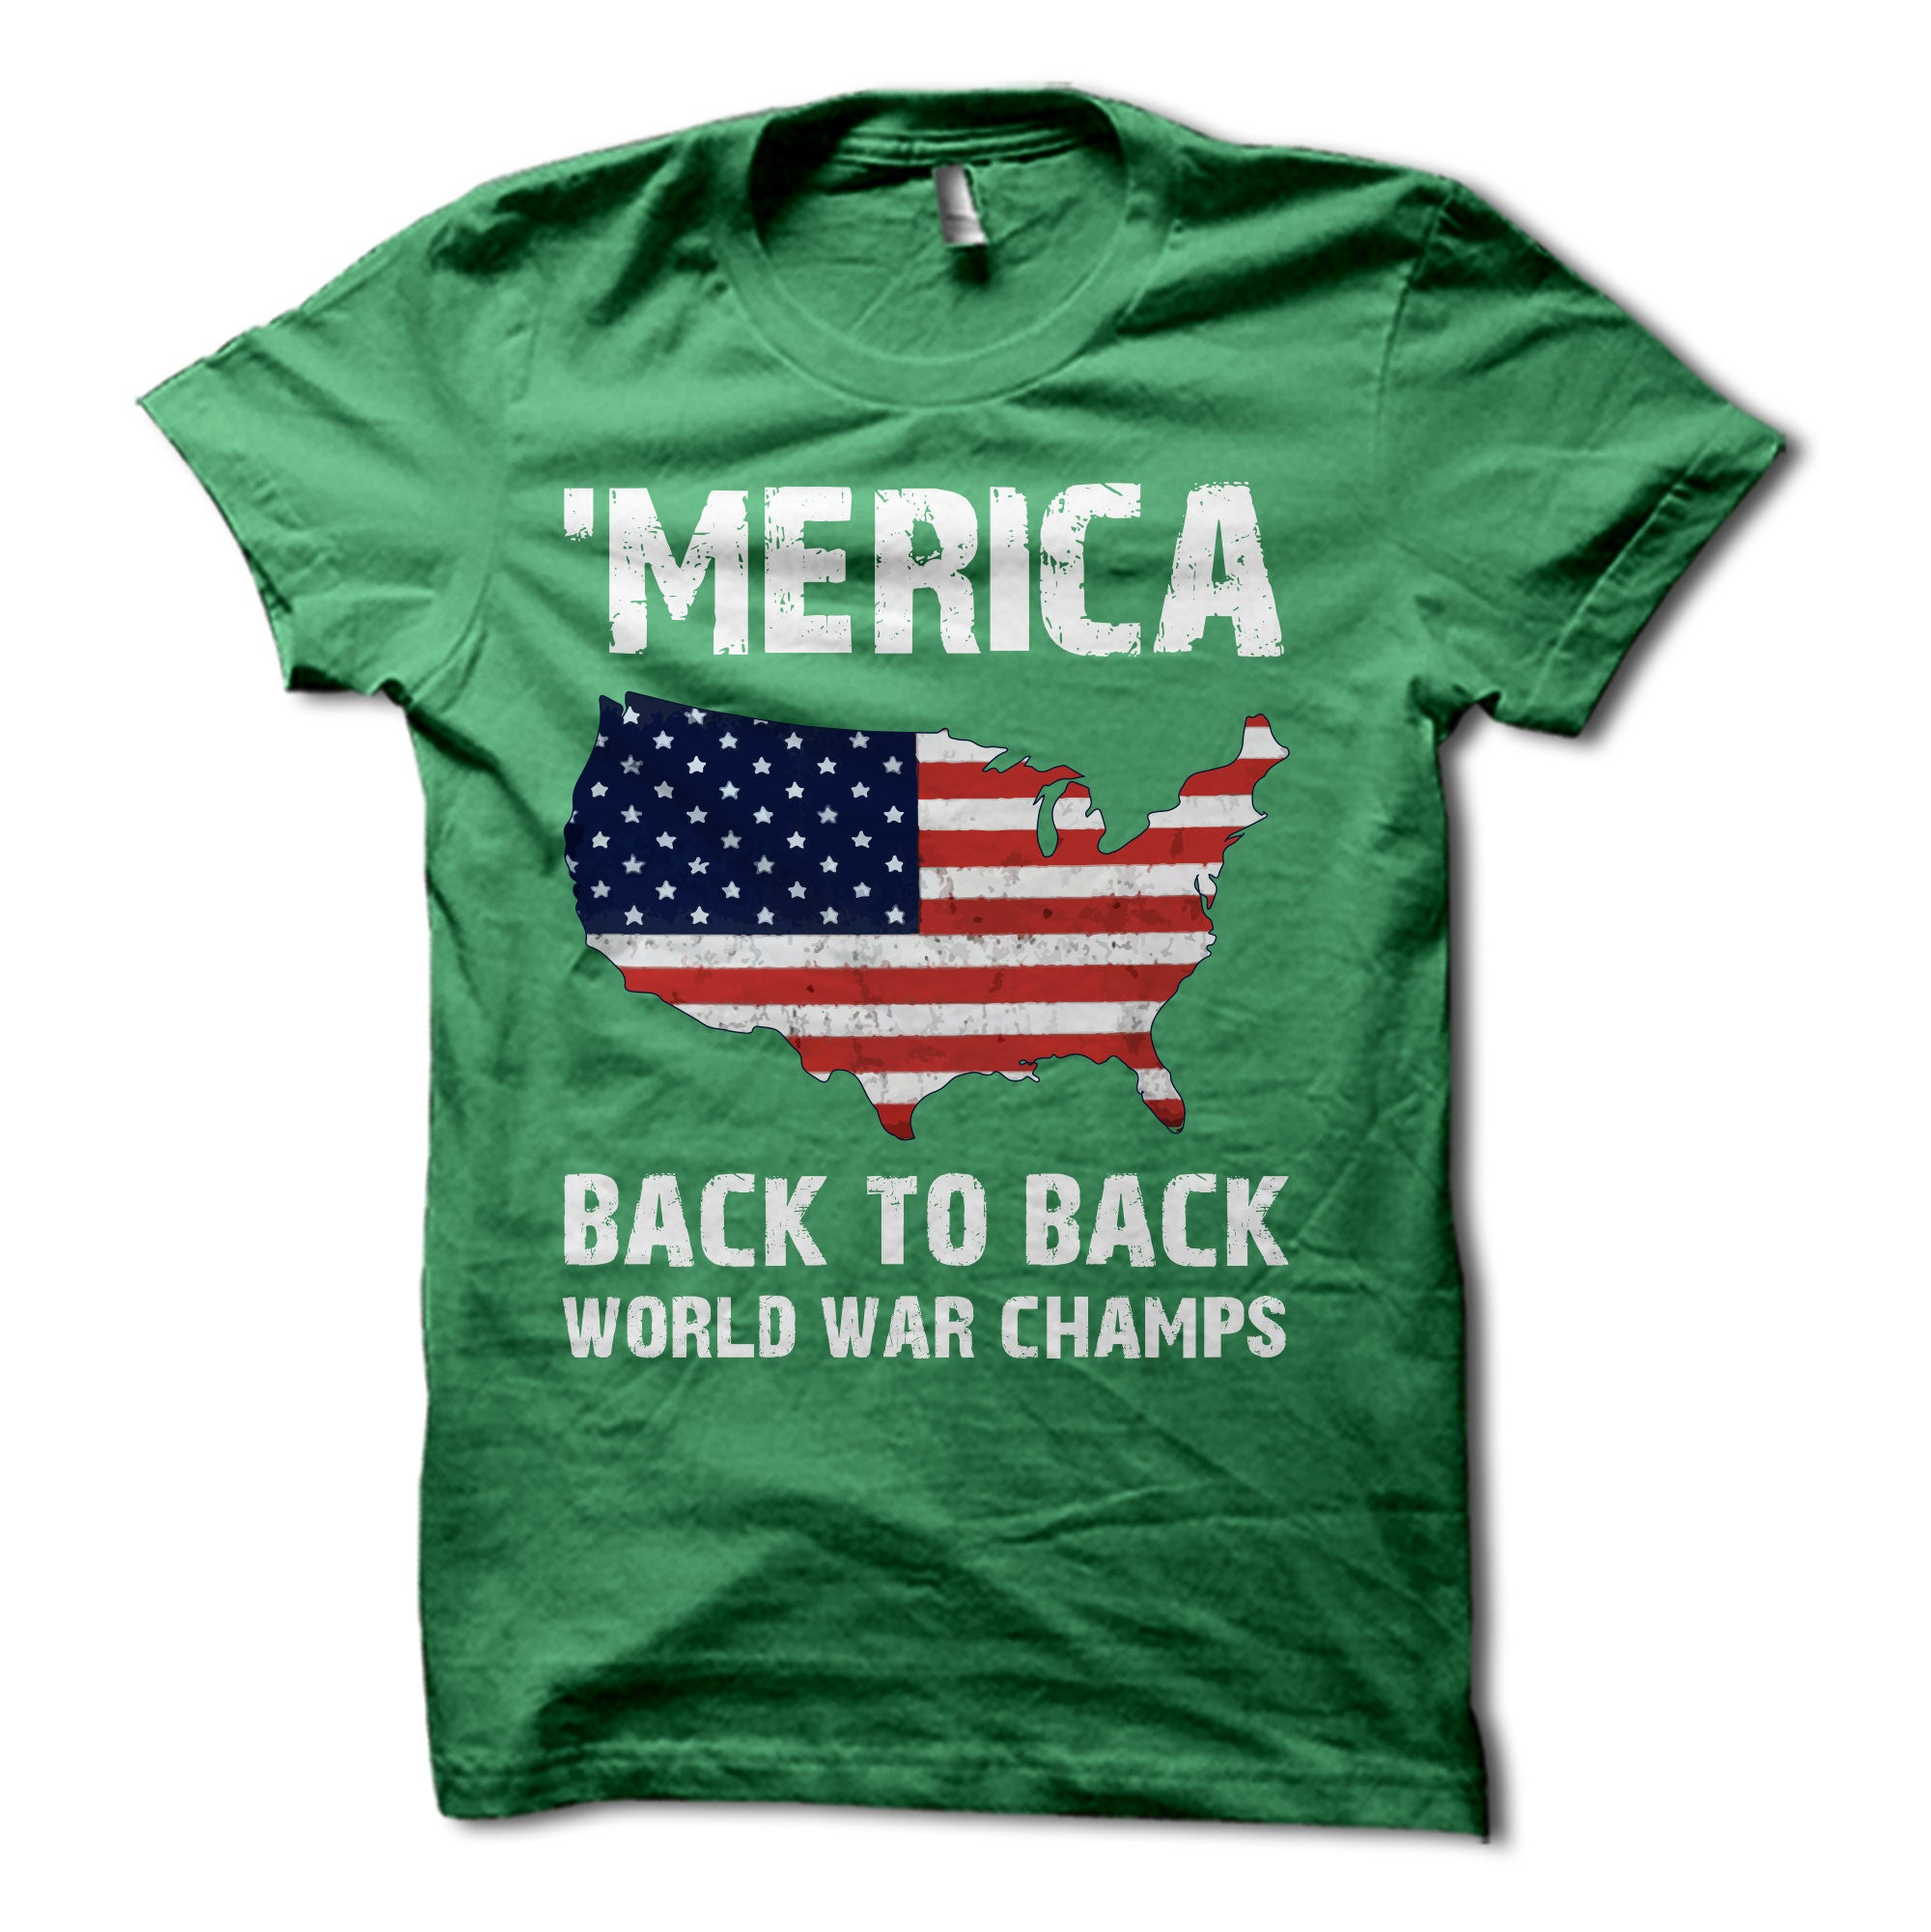 dc56b444 MERICA Back to Back World War Champs USA Shirt – Merica Supply Co.